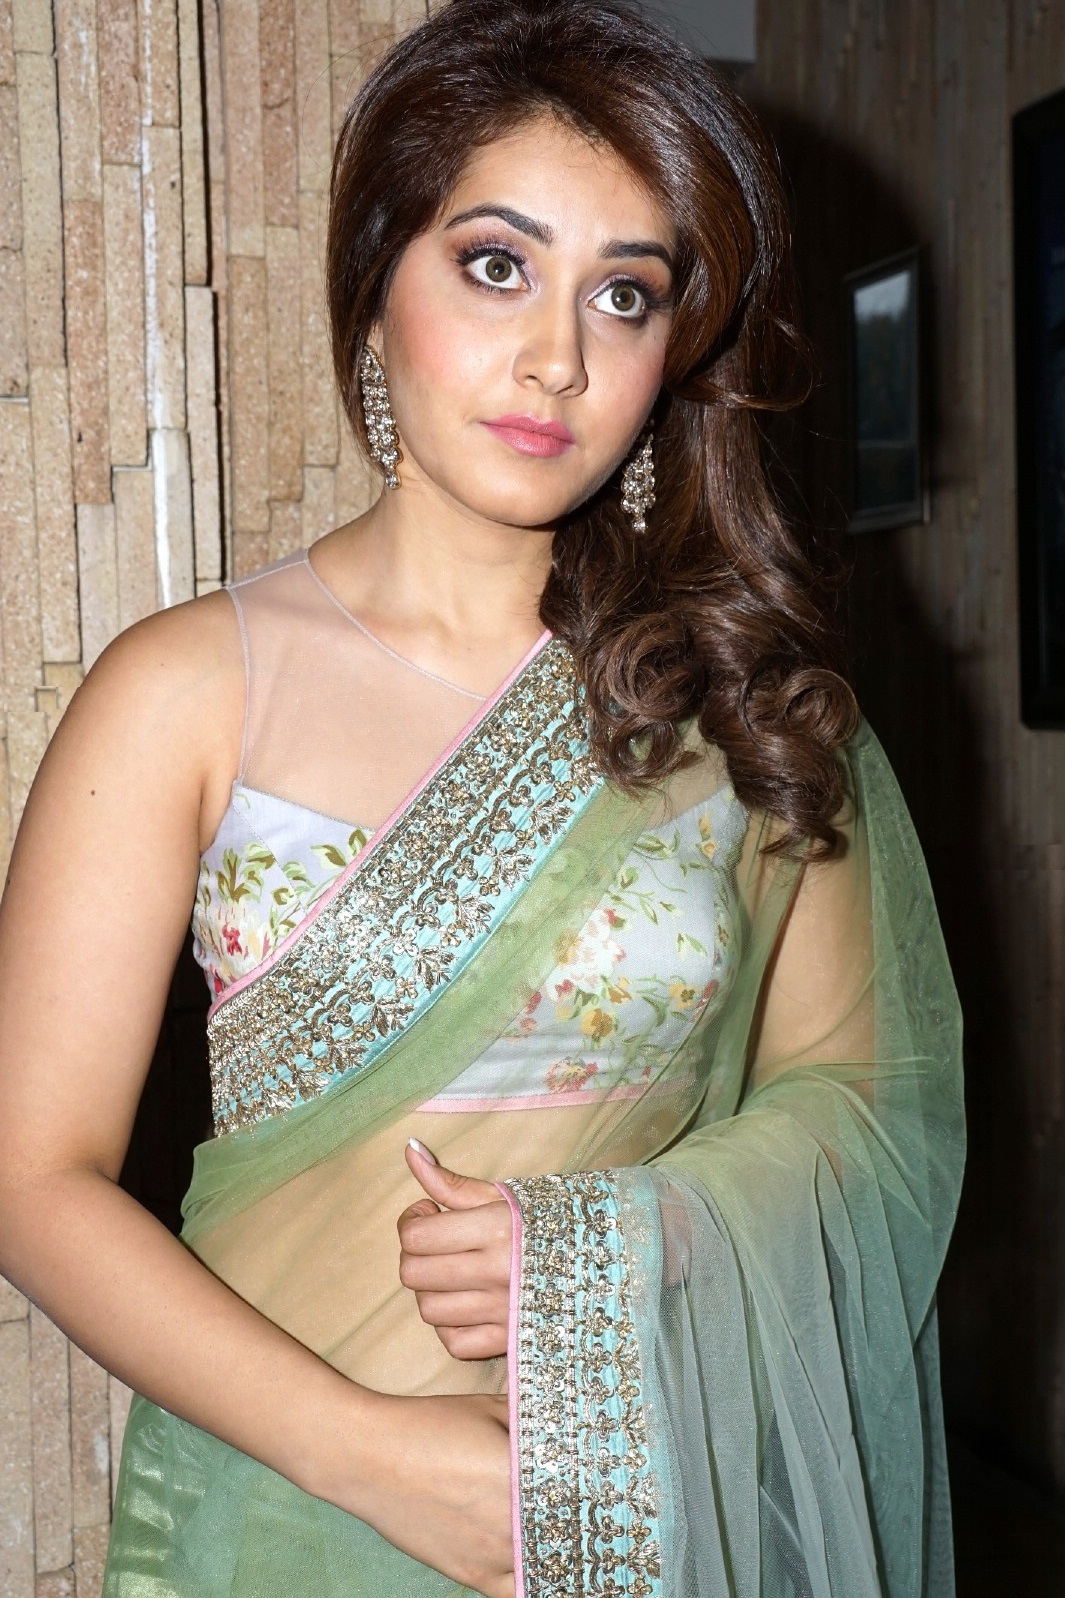 South Indian Atress Rashi Khanna Hot Navel Hip Photos In Transparent Green Saree